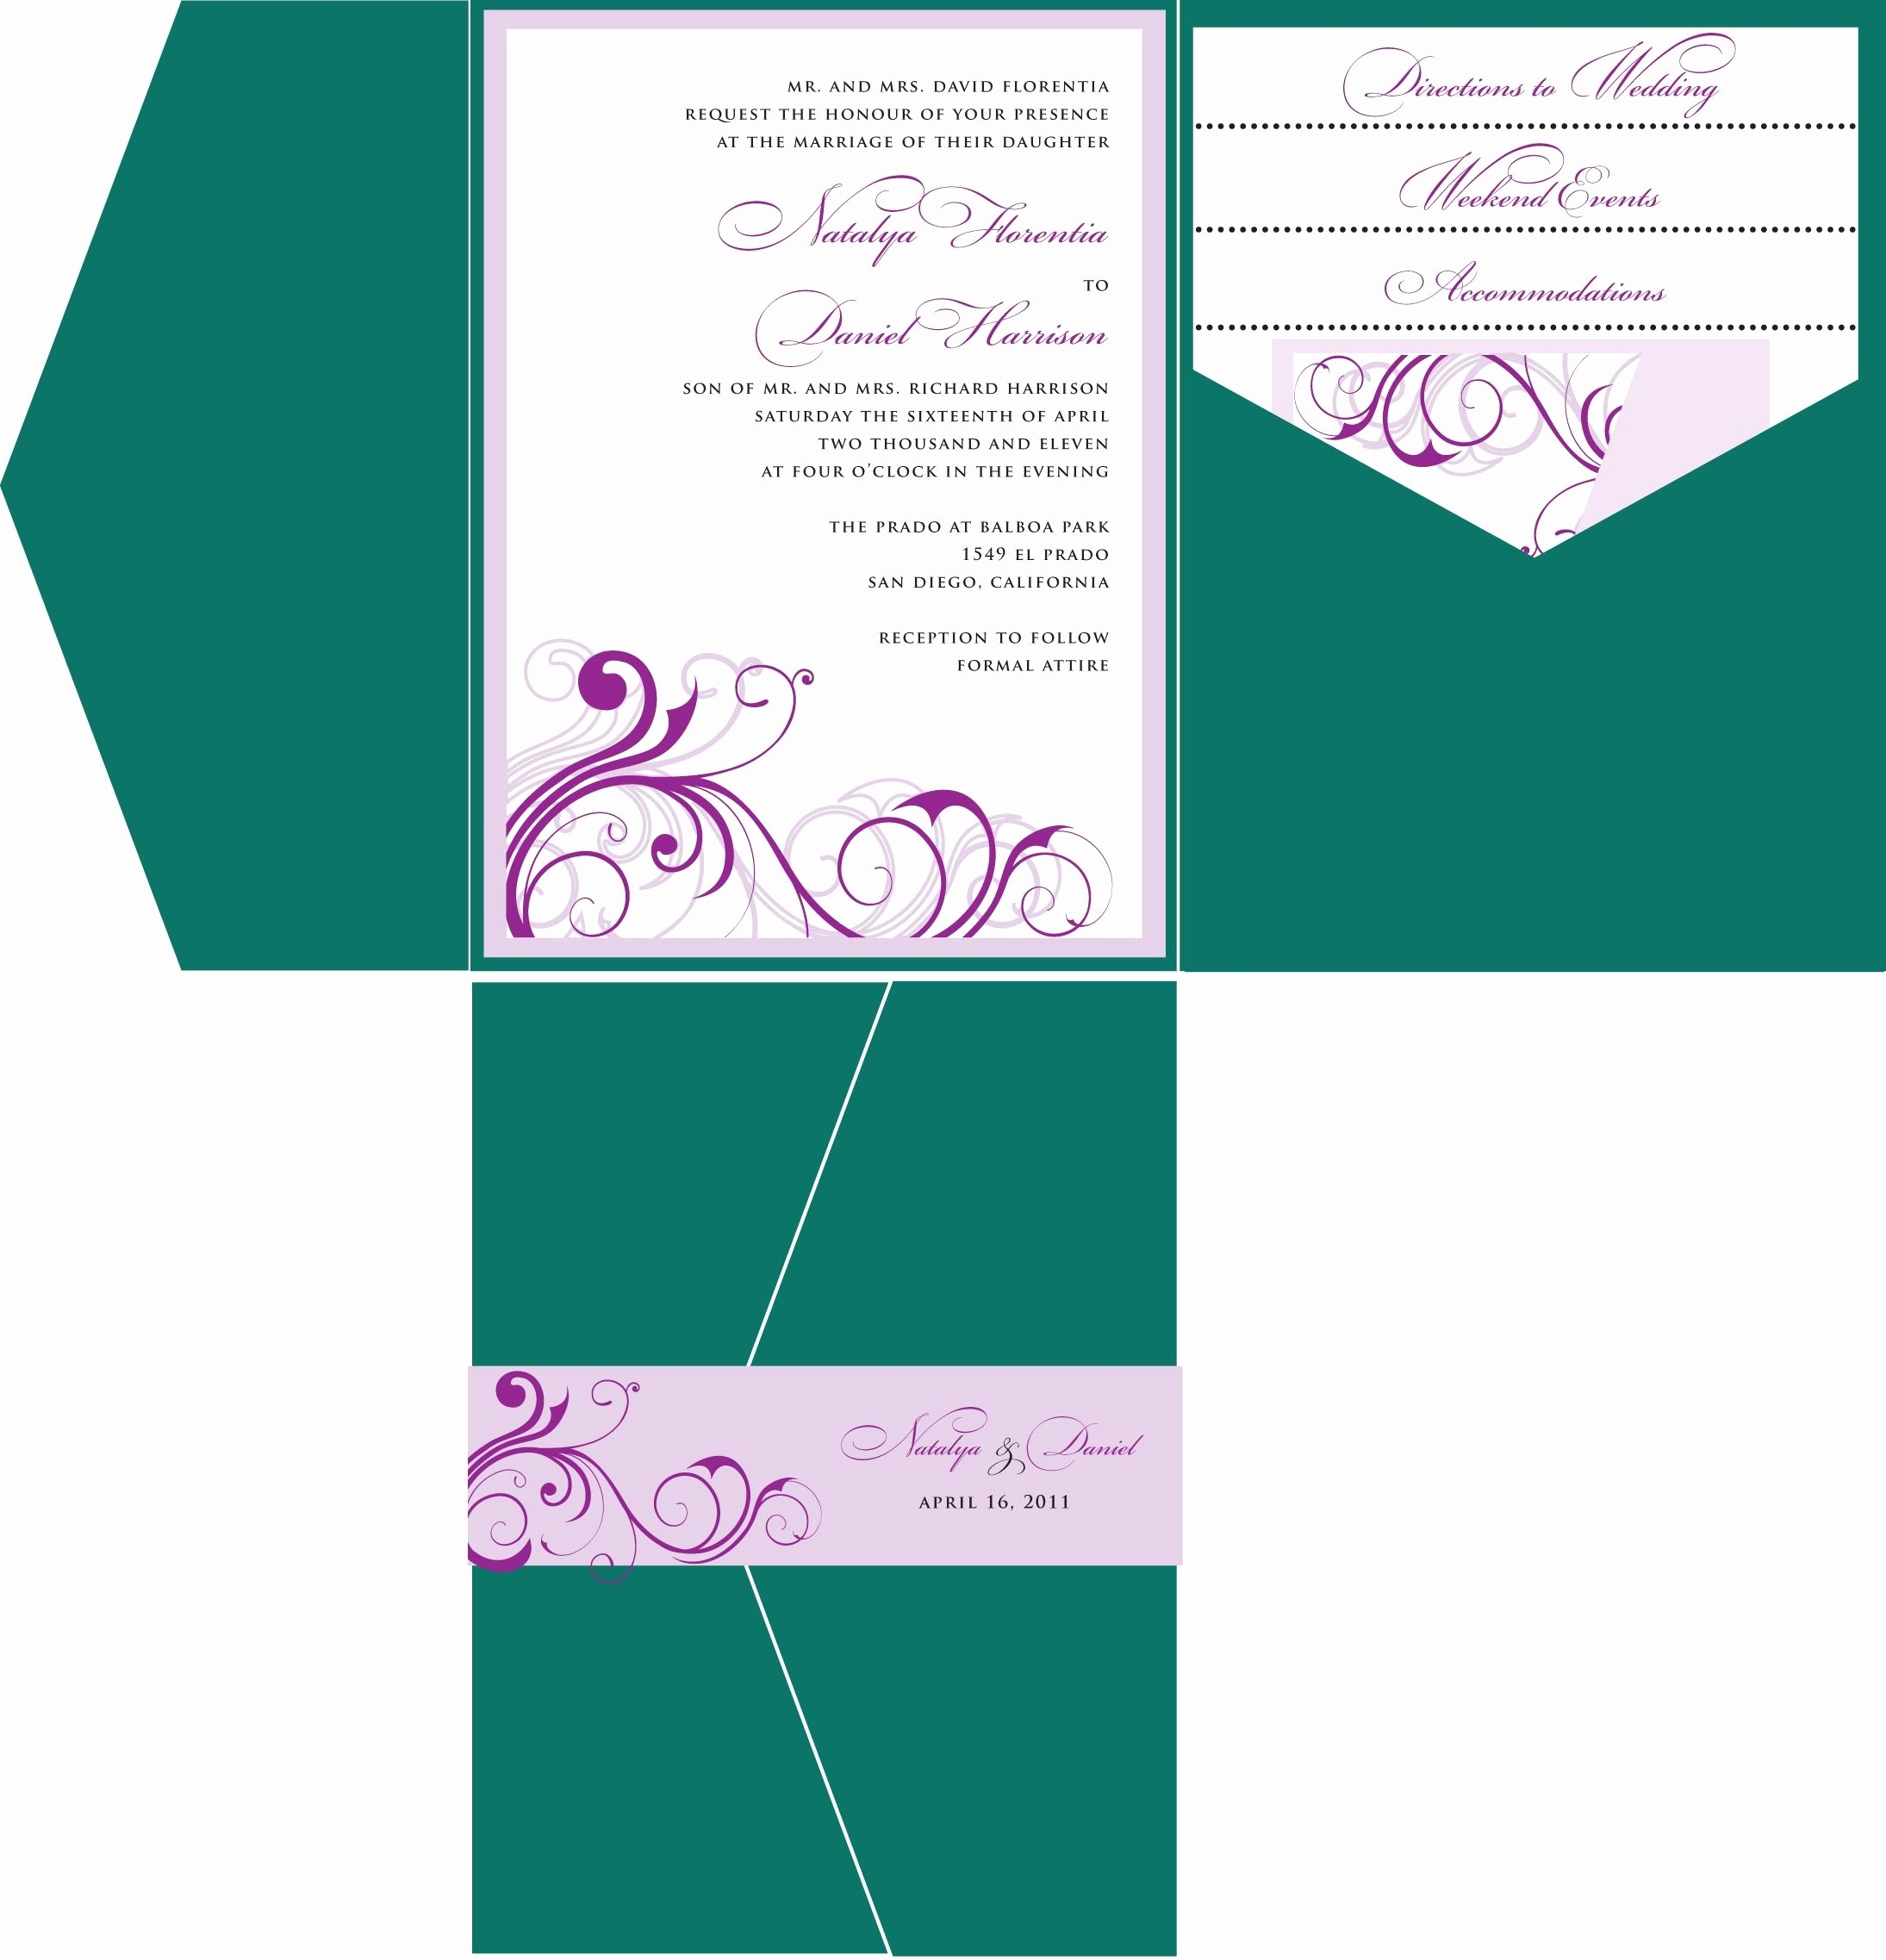 Wedding Invitation Template Word Free Luxury Wedding Invitations Template Wedding Invitations